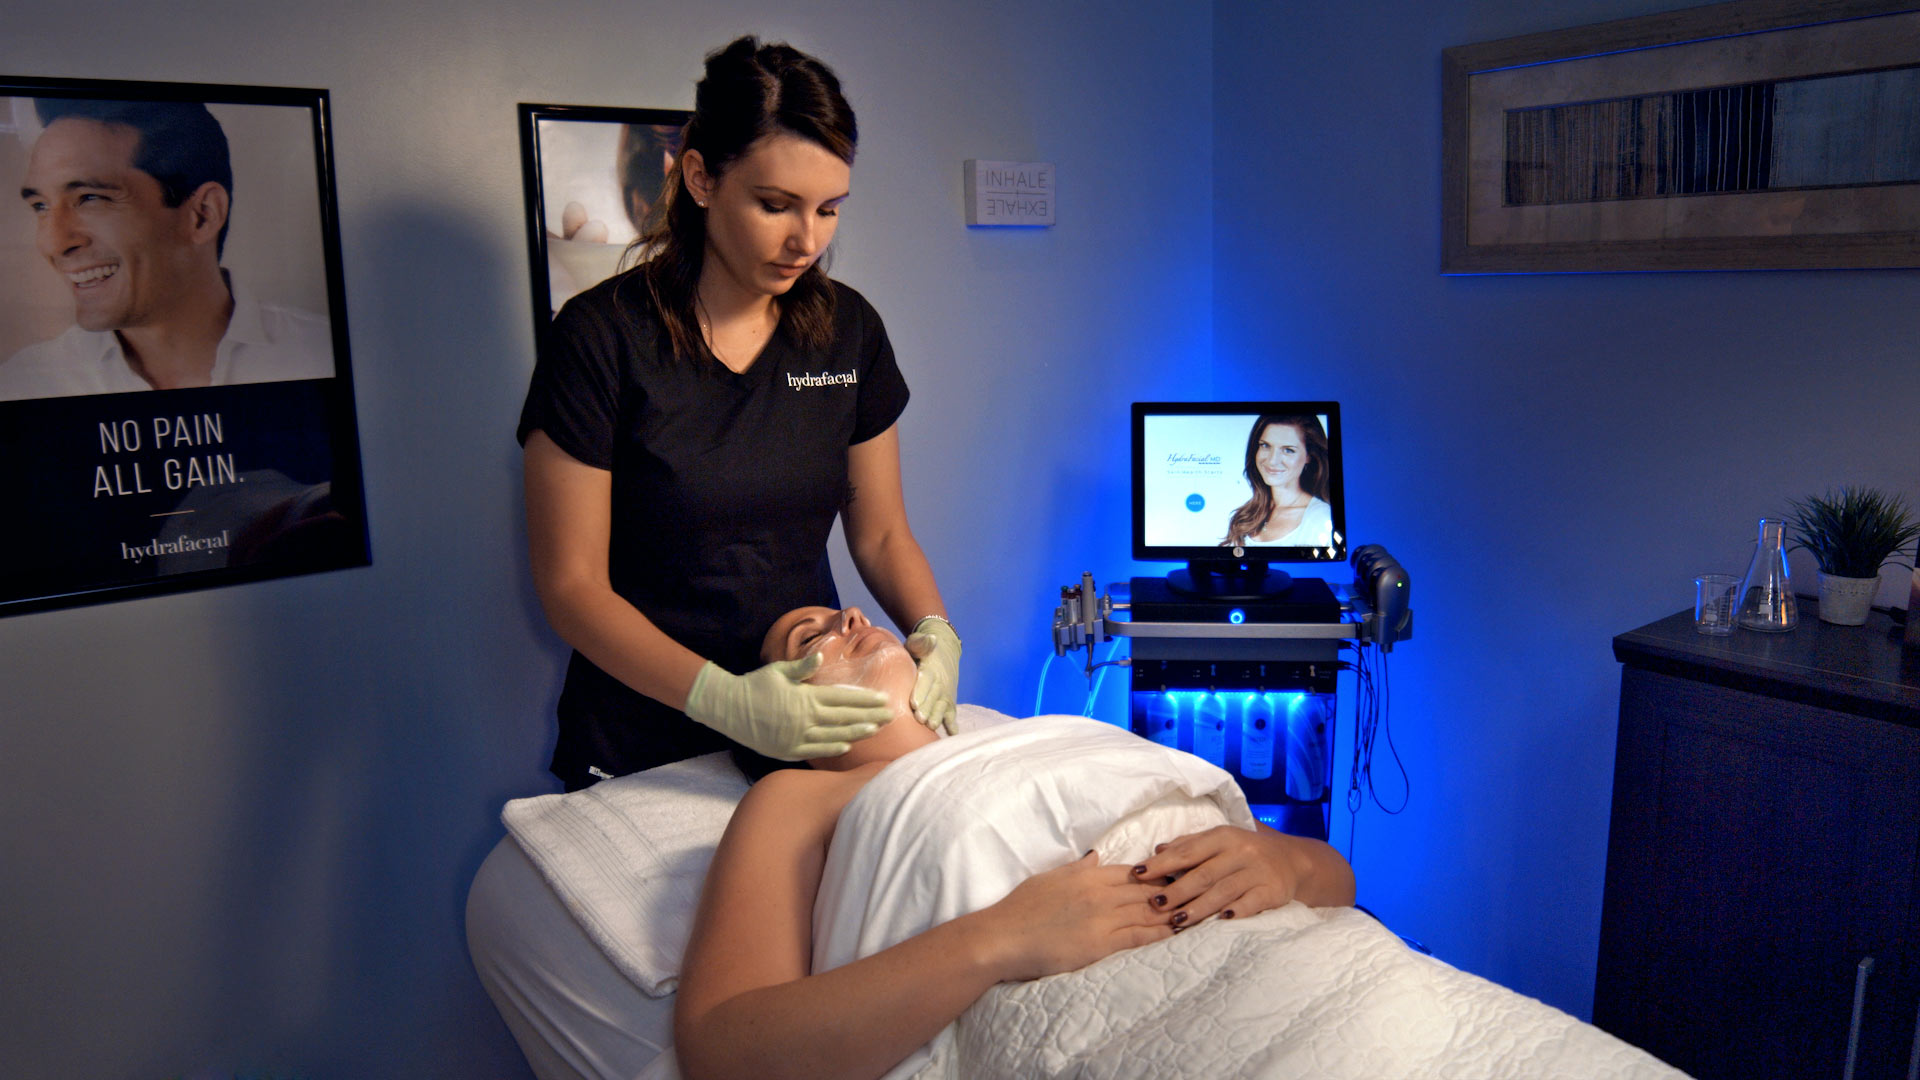 HydraFacial Treatment Photo. Commercial Photography by Redmonkie in Miami, FL